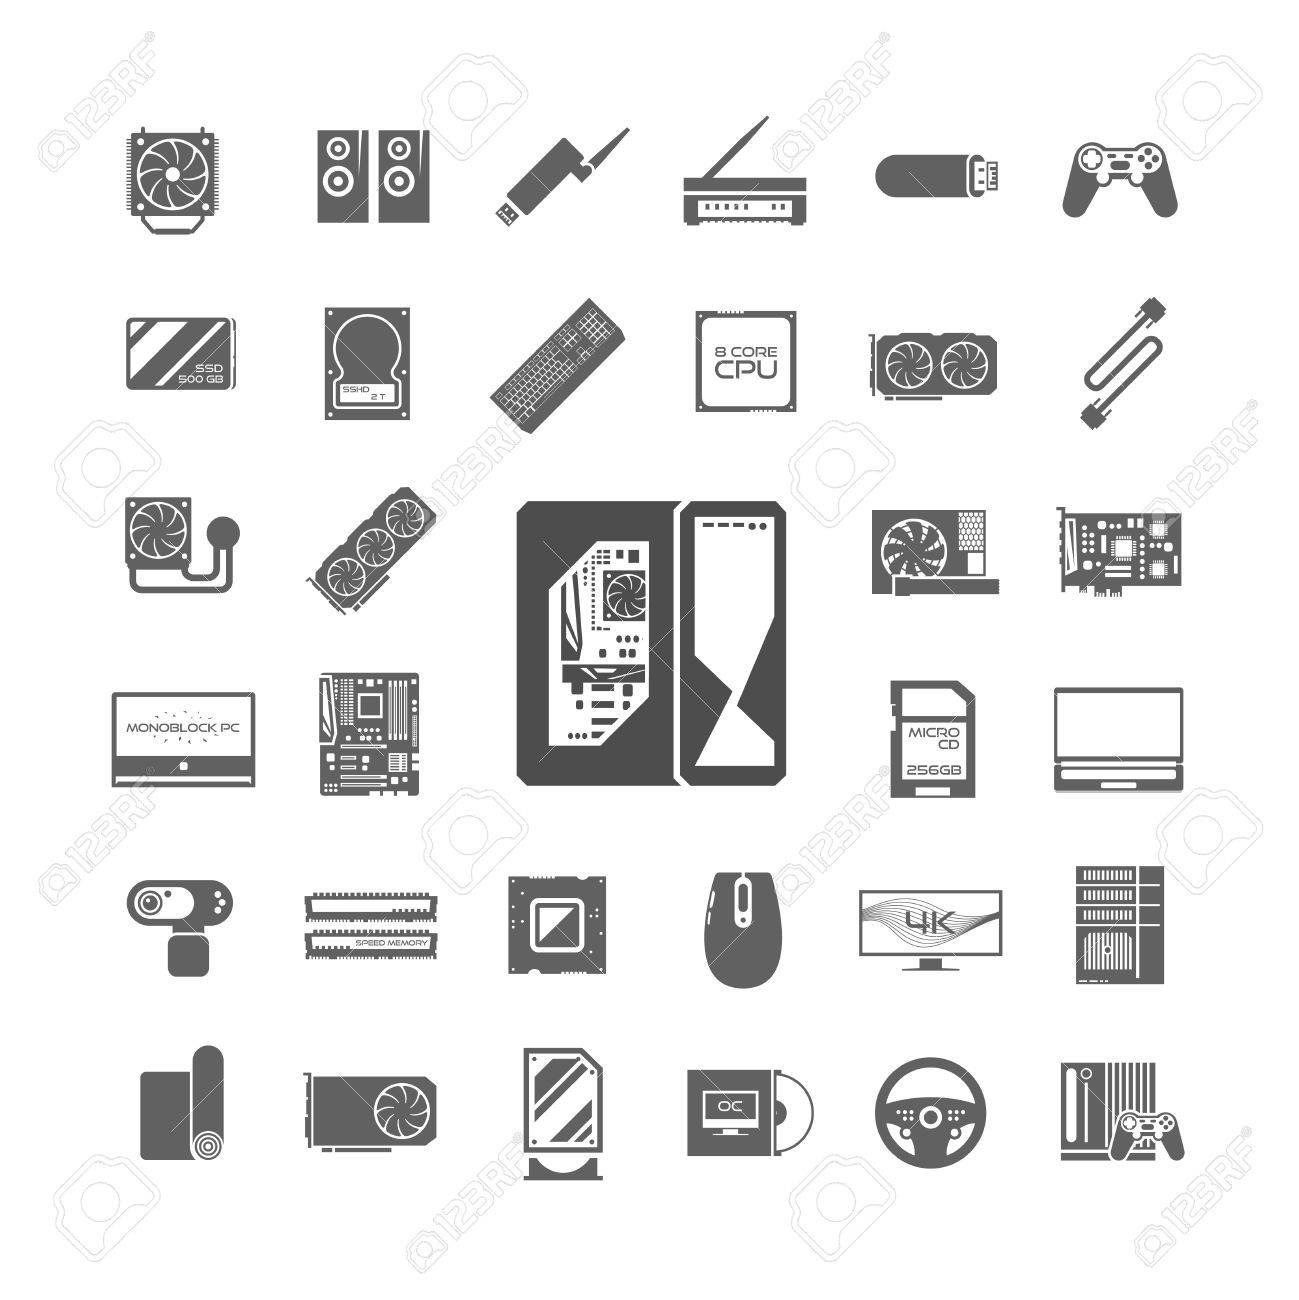 Free pc icon png 353571 | download pc icon png 353571.